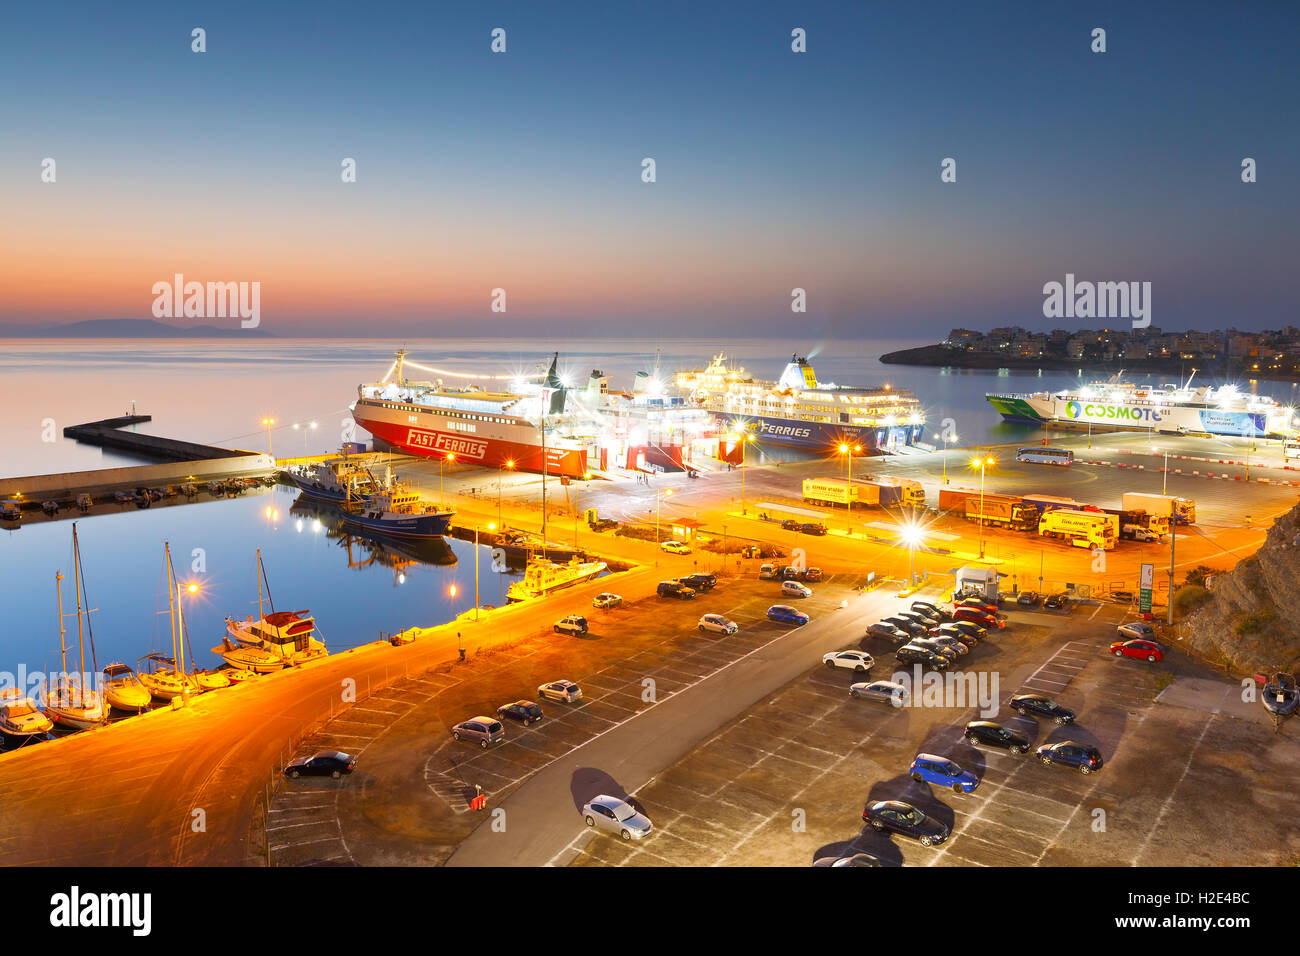 Ferries of different carriers in passenger port of Rafina. - Stock Image